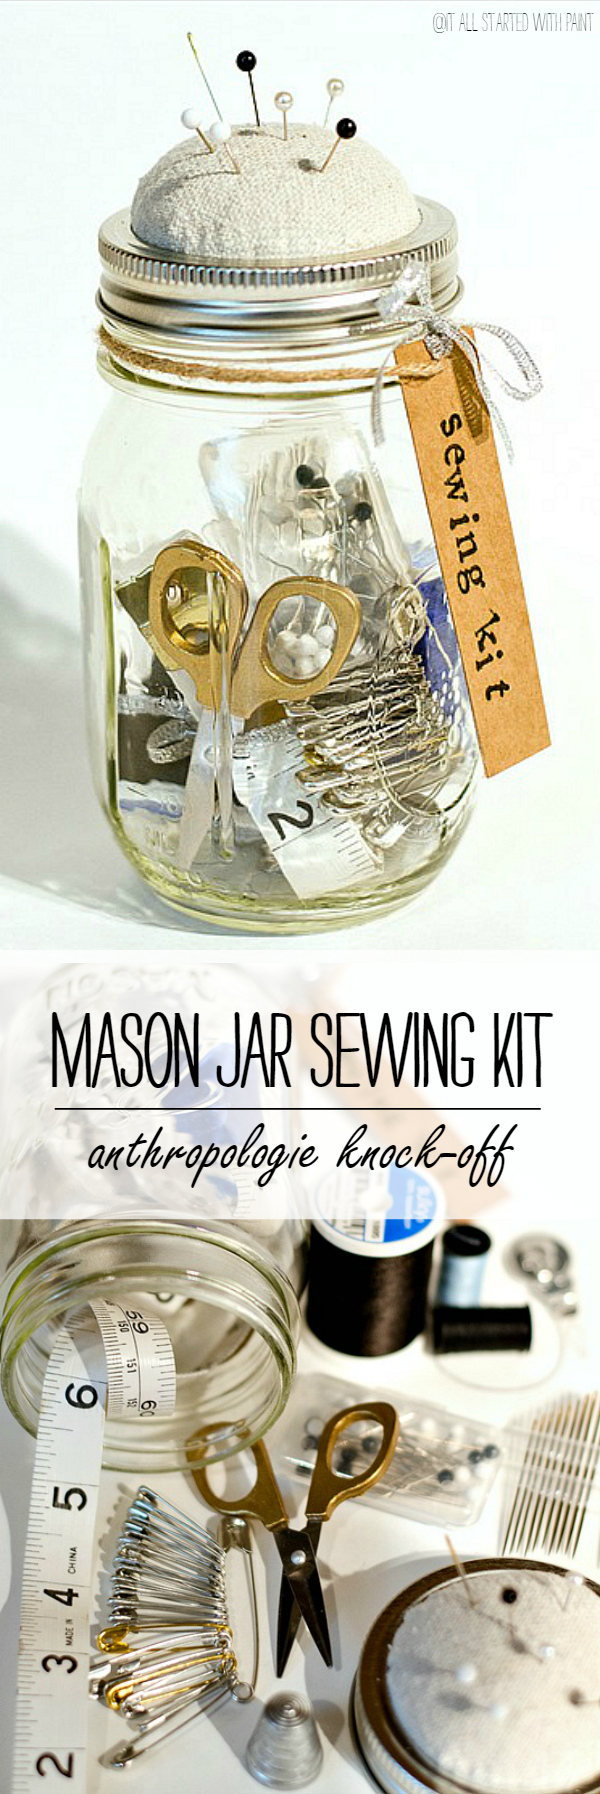 Anthropologie Mason Jar Sewing Kit Craft Idea